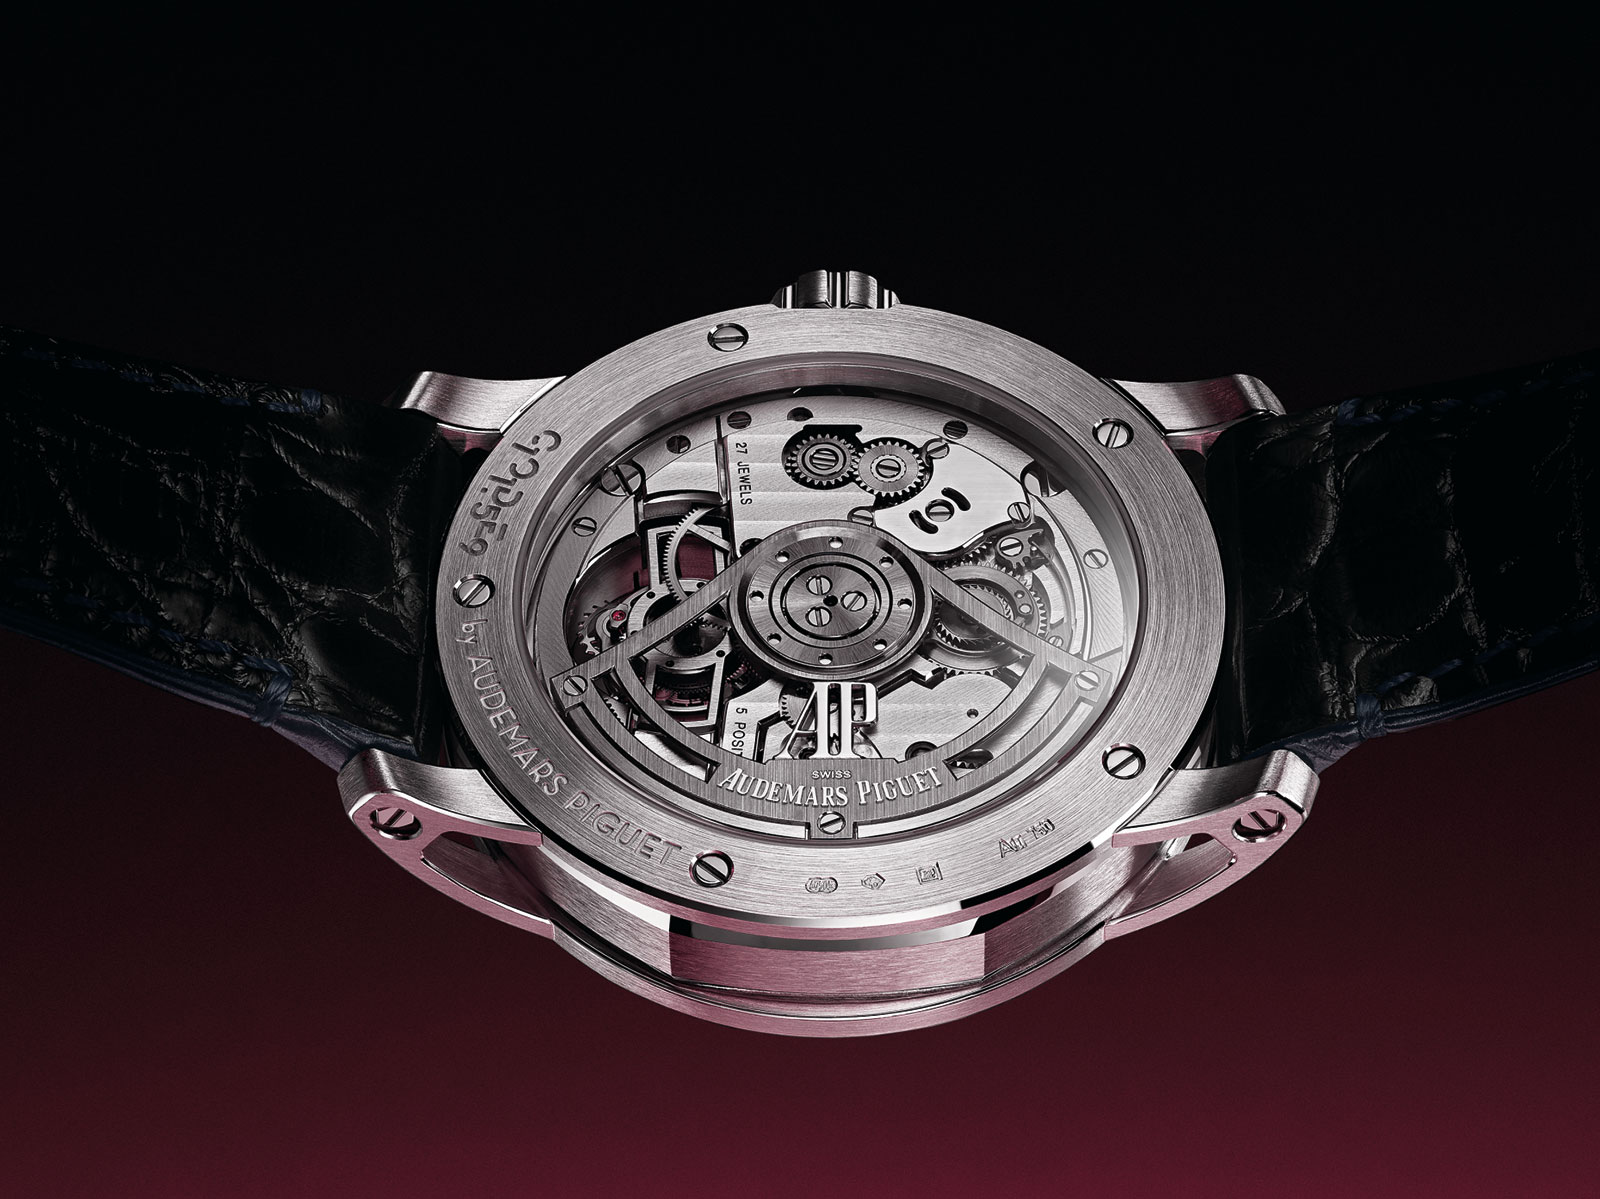 Audemars Piguet Code 1159 Selfwinding Flying Tourbillon 3